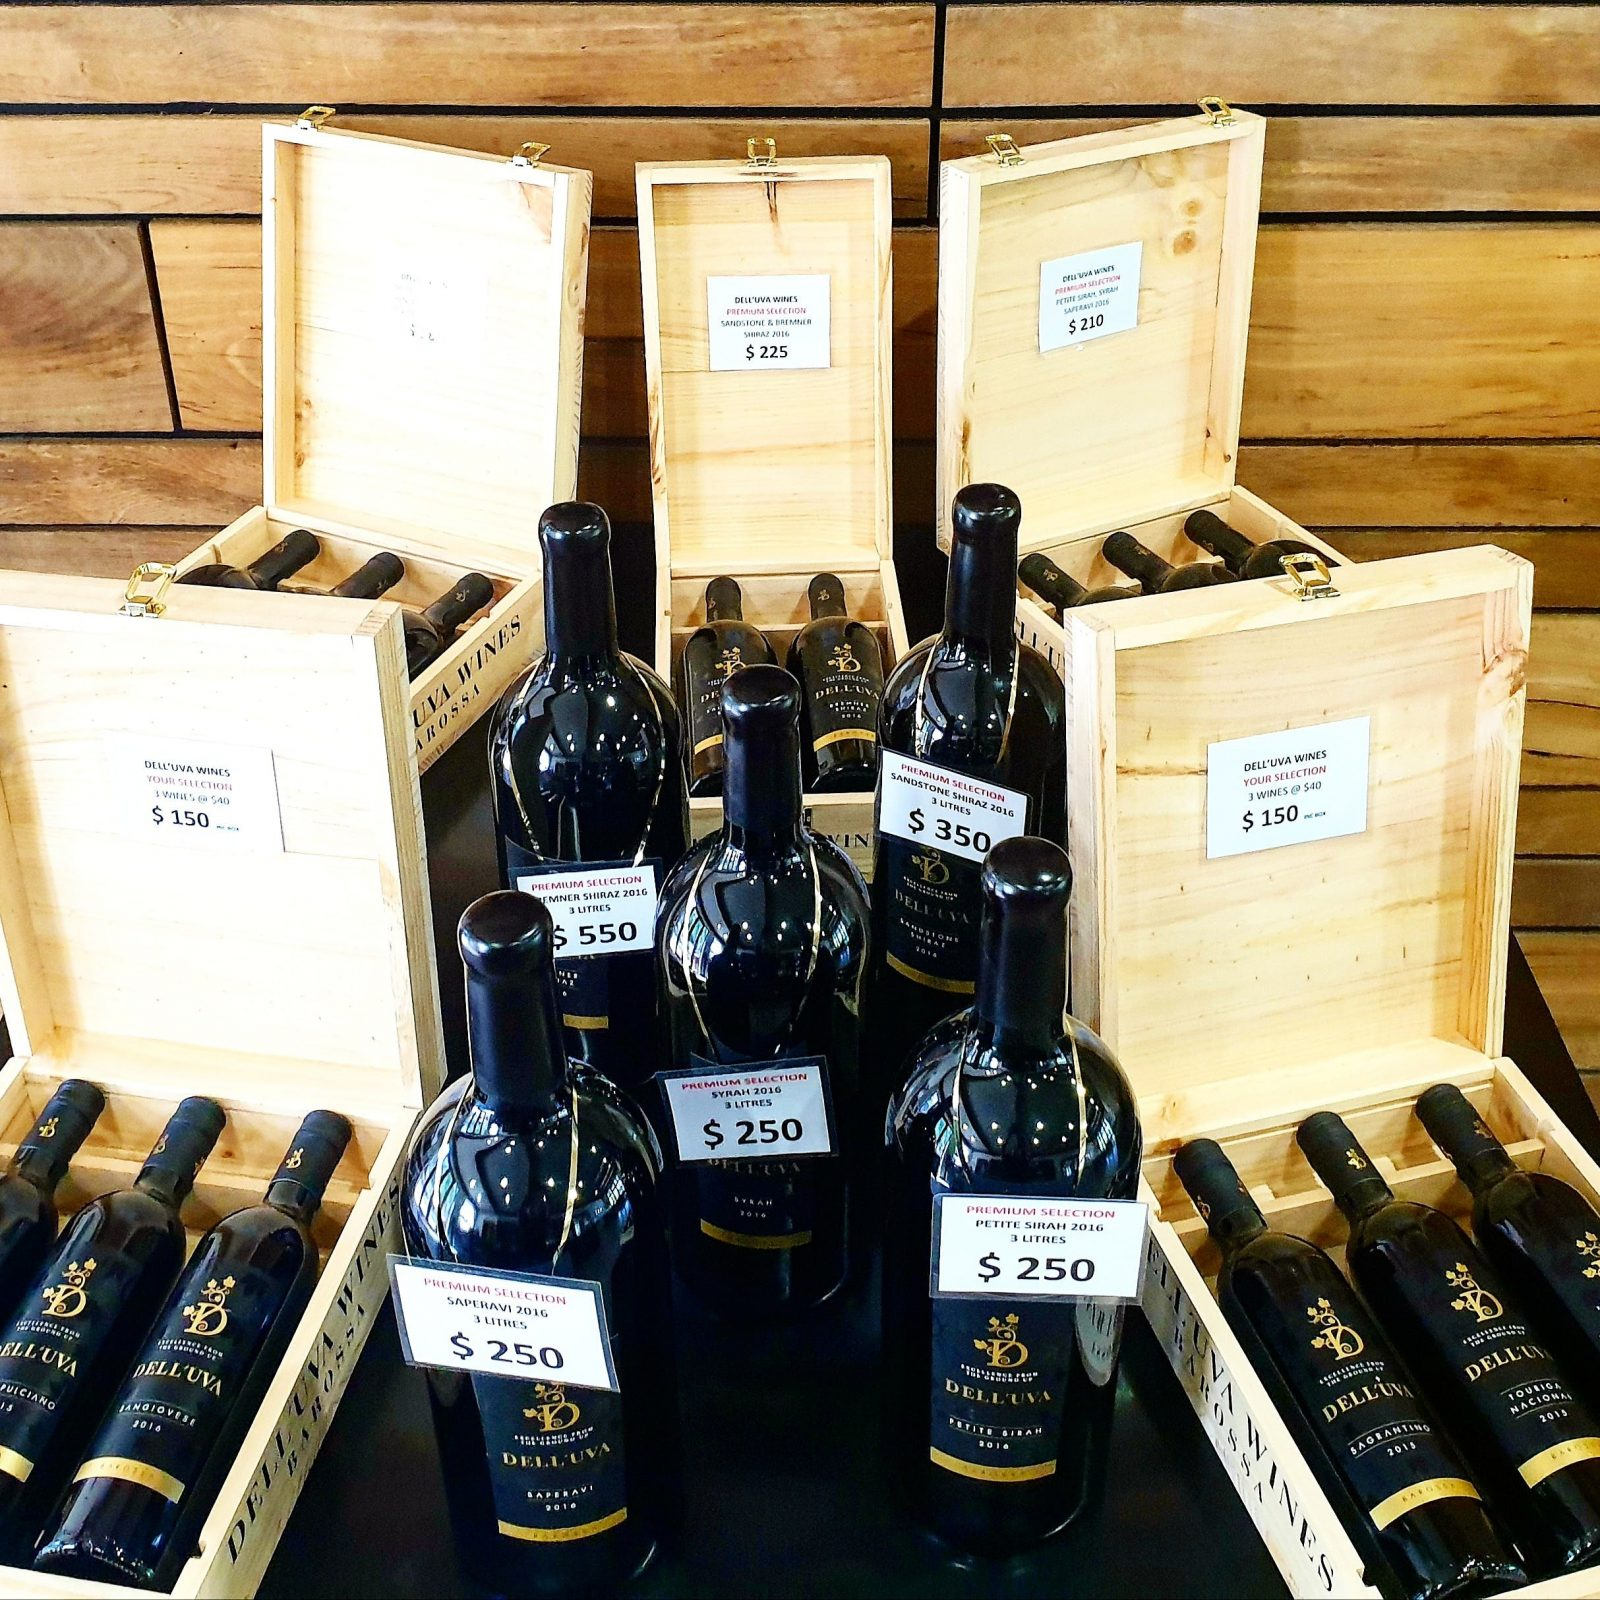 Magnums of Saperavi, Petite Sirah, Sandstone Shiraz, Bremner Shiraz and our wooden display boxes